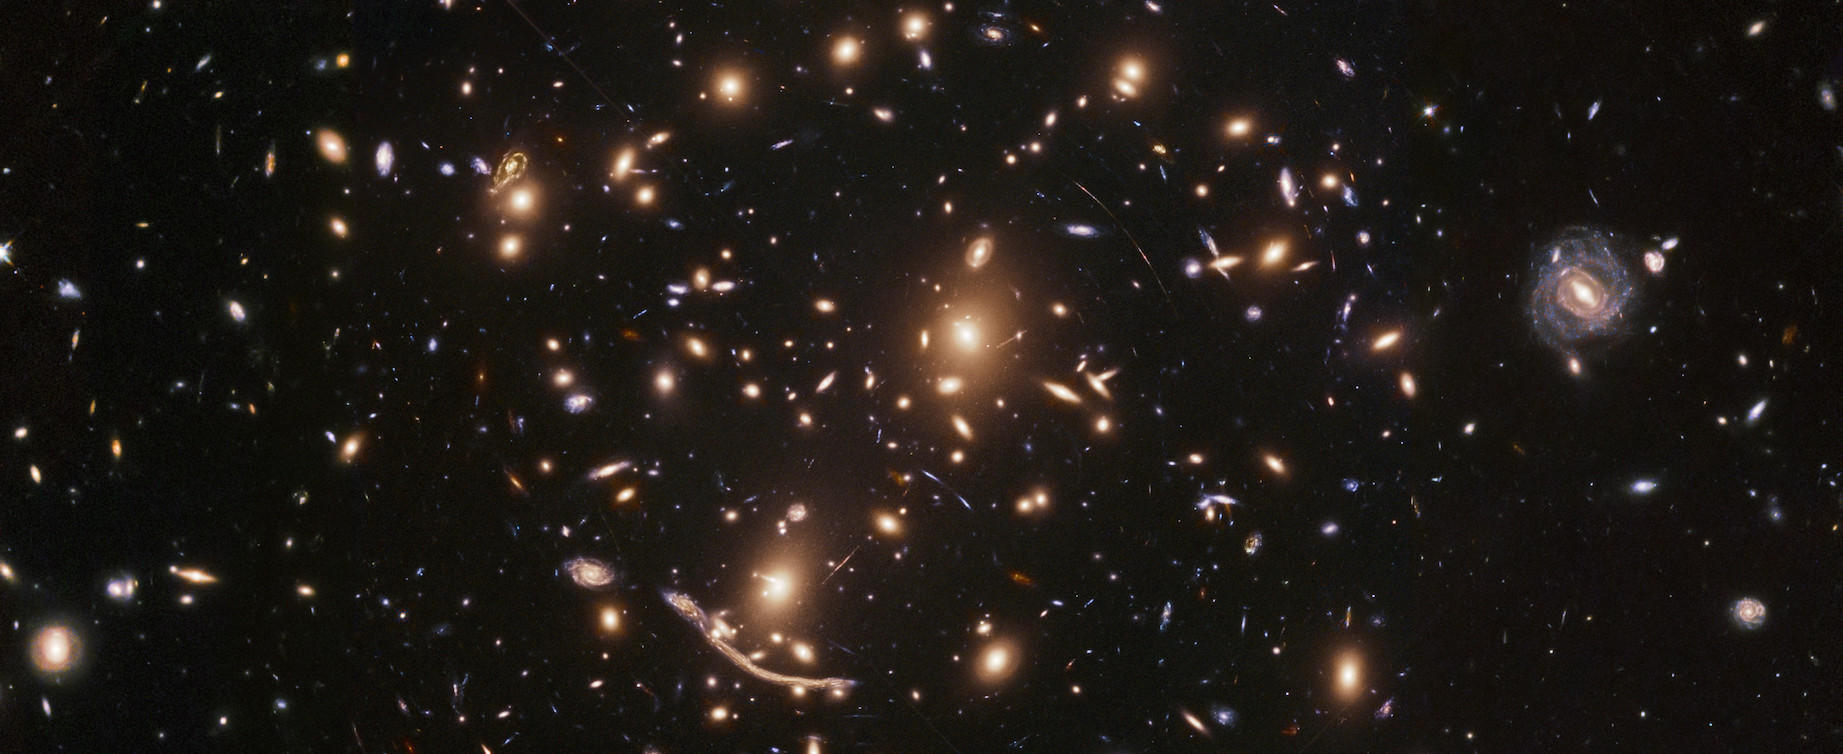 Amas de galaxies lointaines vues par le télescope spatial... Hubble.© ESA-NASA